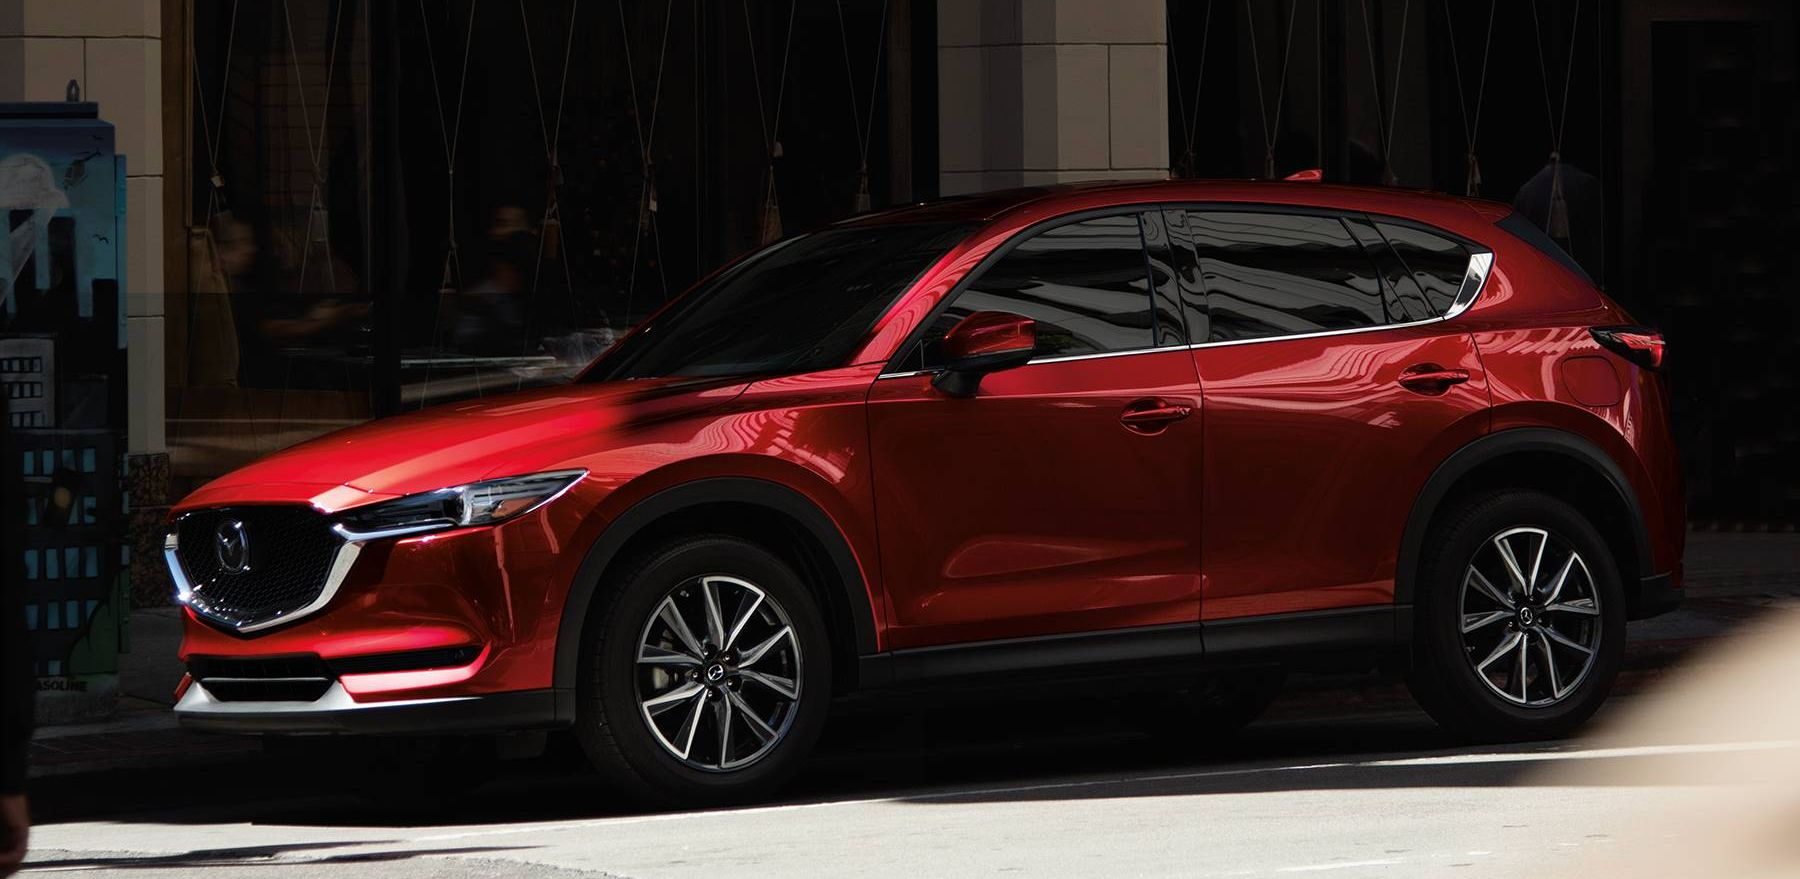 2018 Mazda CX-5 for Sale in San Antonio, TX